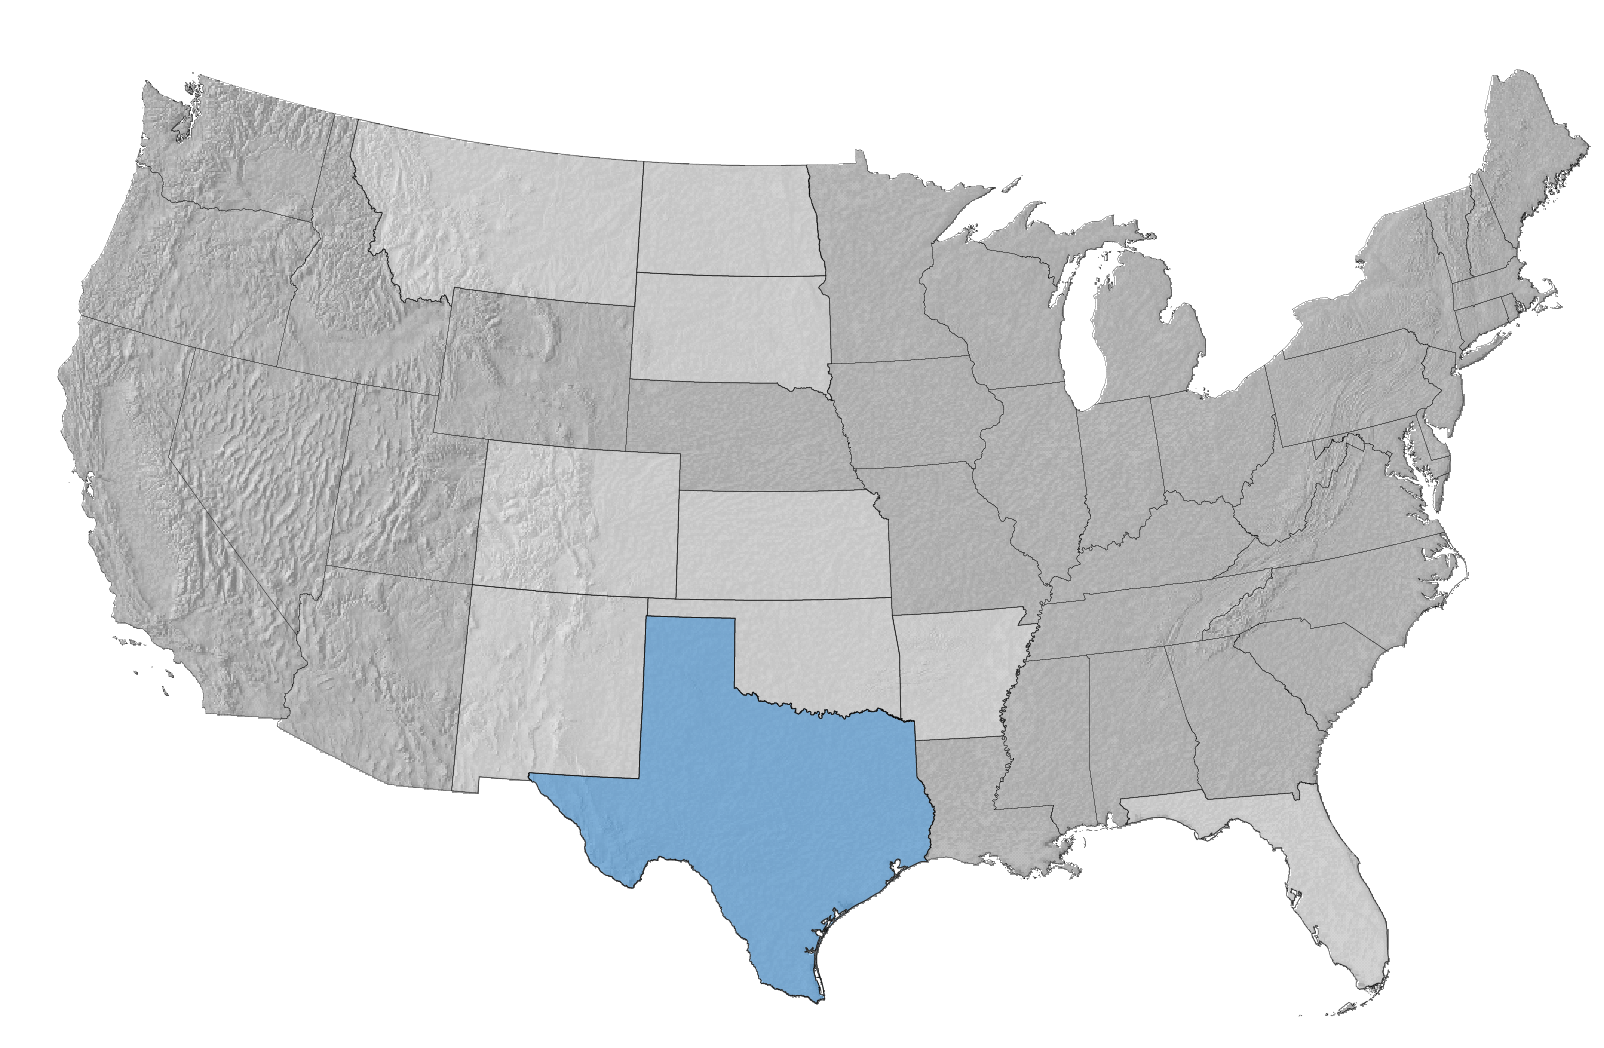 USA Map with Texas Highlighted